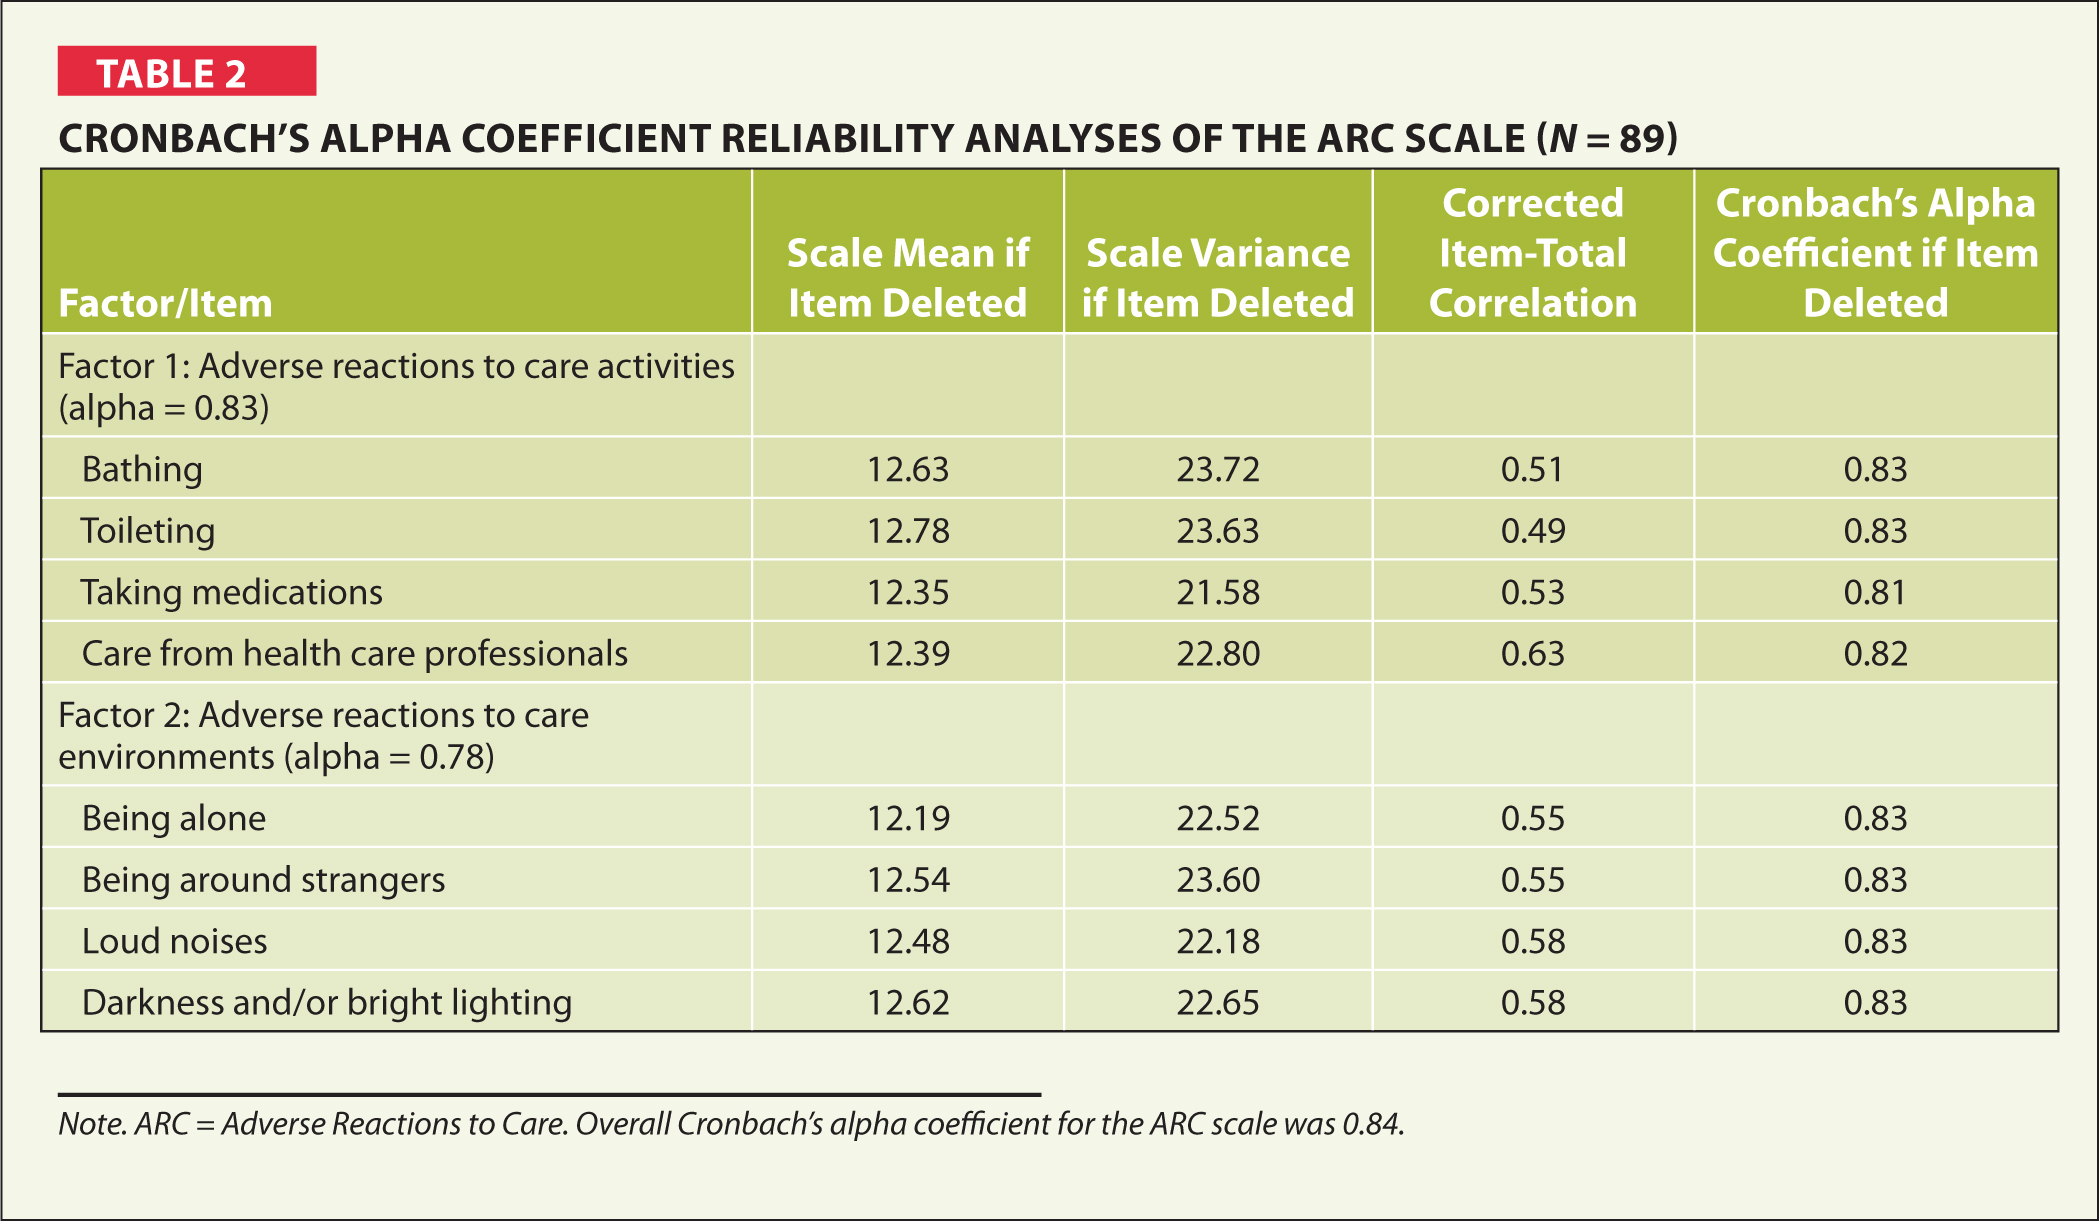 Cronbach's Alpha Coefficient Reliability Analyses of the Arc Scale (N = 89)